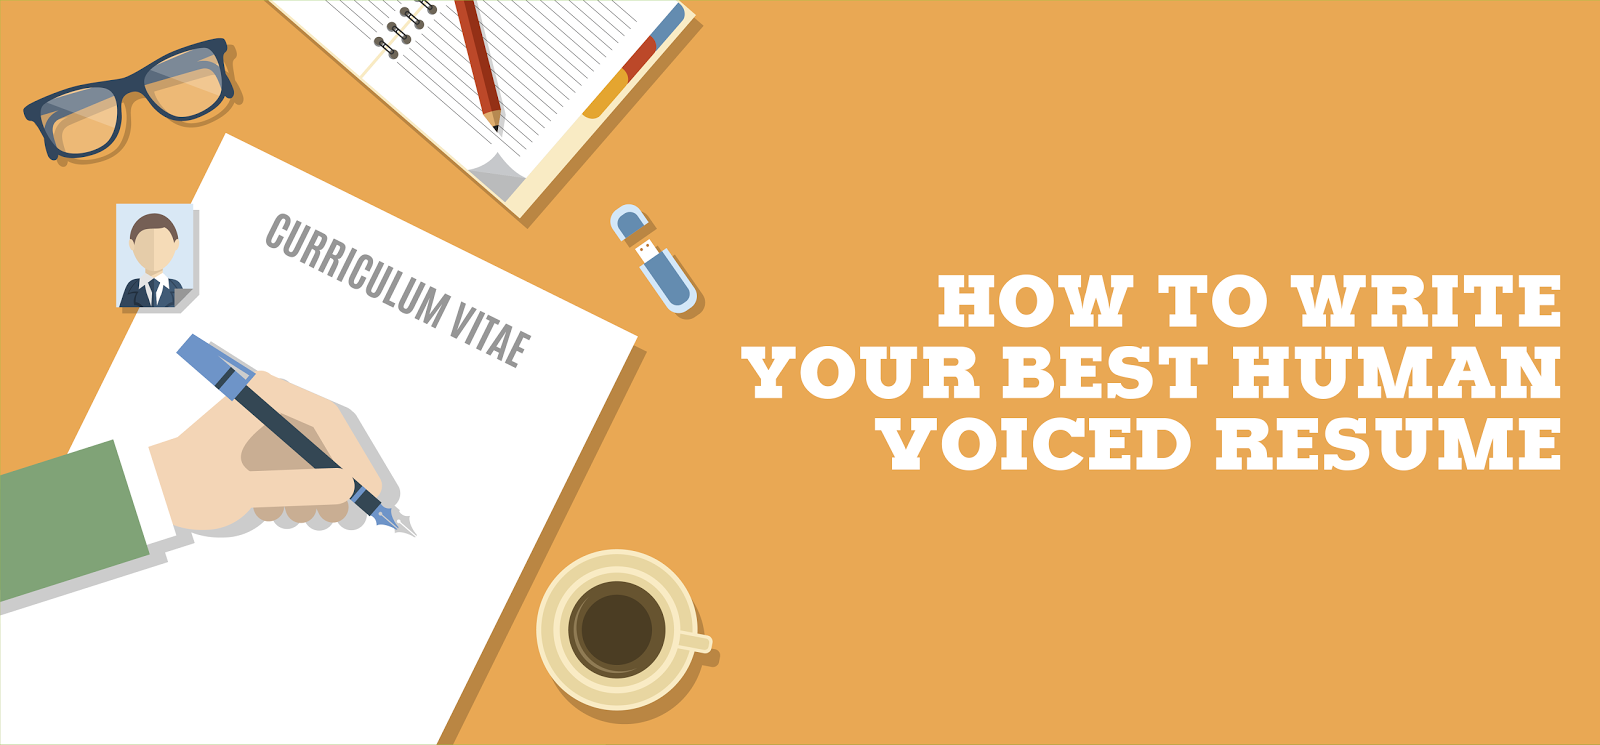 how to write your best human voiced resume blog